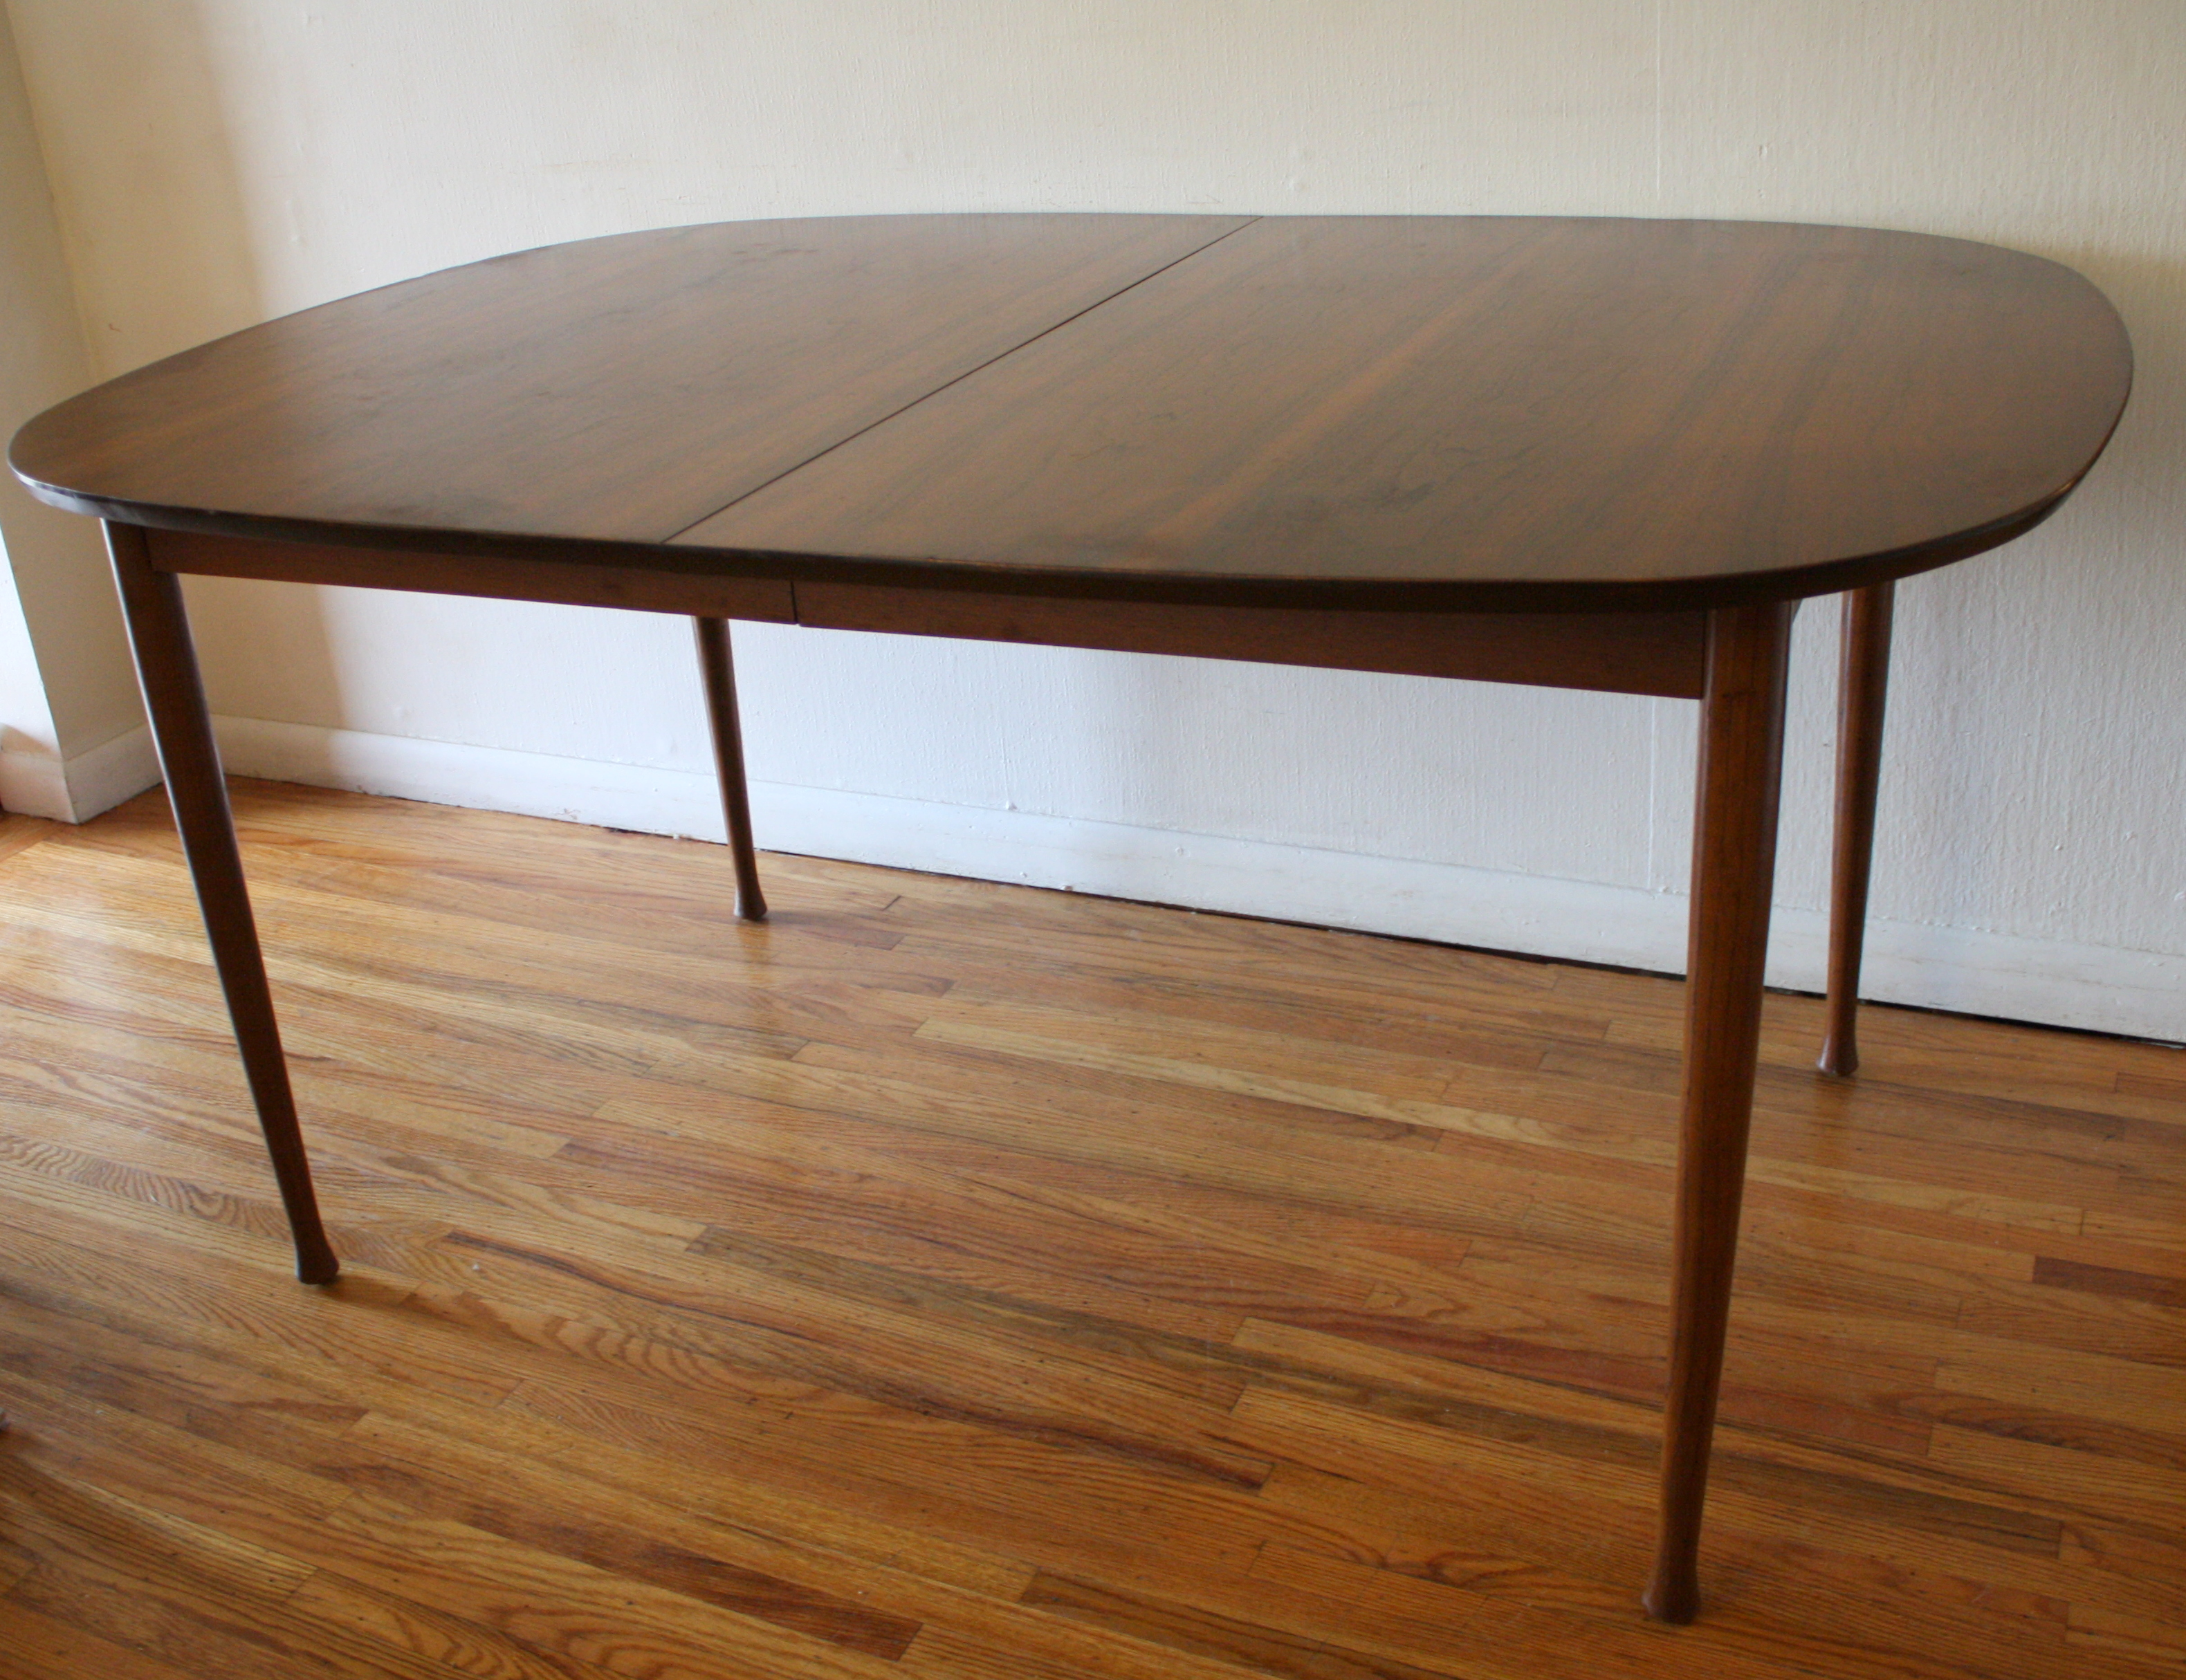 Mid Century Modern Dining Tables With Hidden Leaves | Picked Vintage Amazing Design